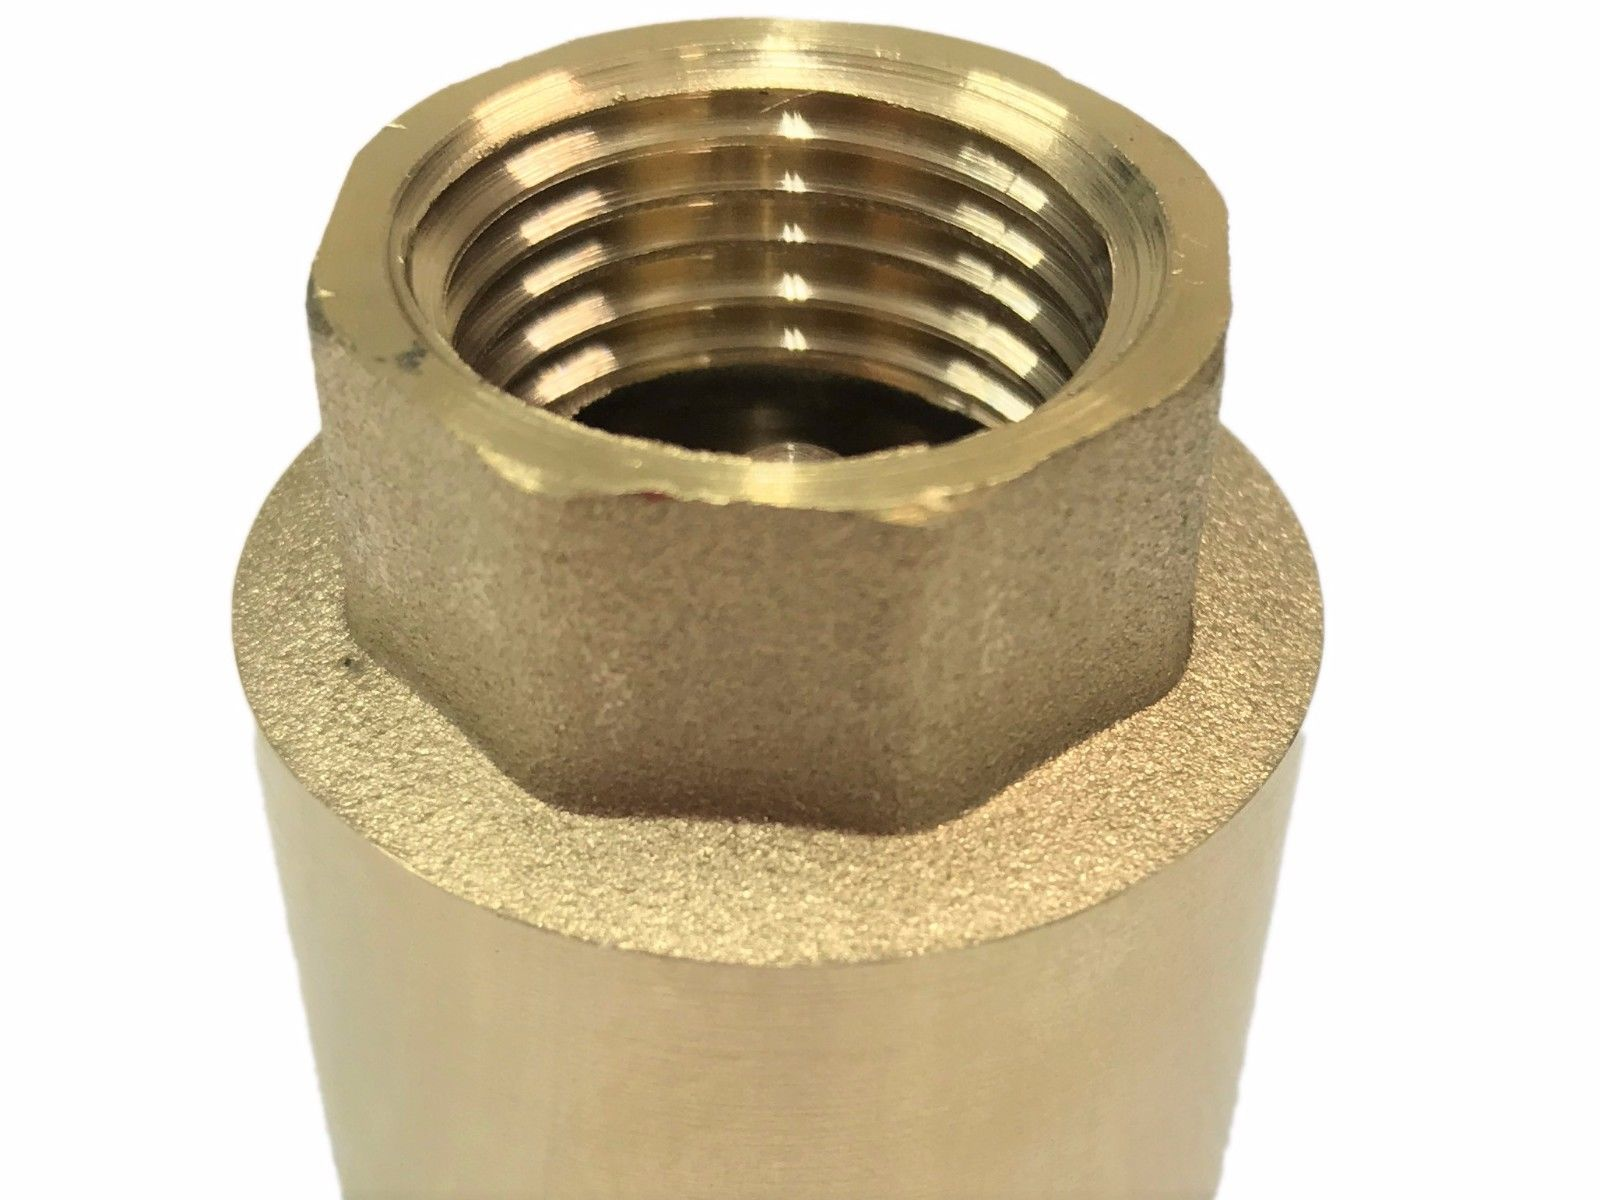 1//4 Hex Size Small Parts 141404HM303 18-8 Stainless Steel Male-Female Threaded Hex Standoff Pack of 10 7//8 Length 4-40 Thread Size